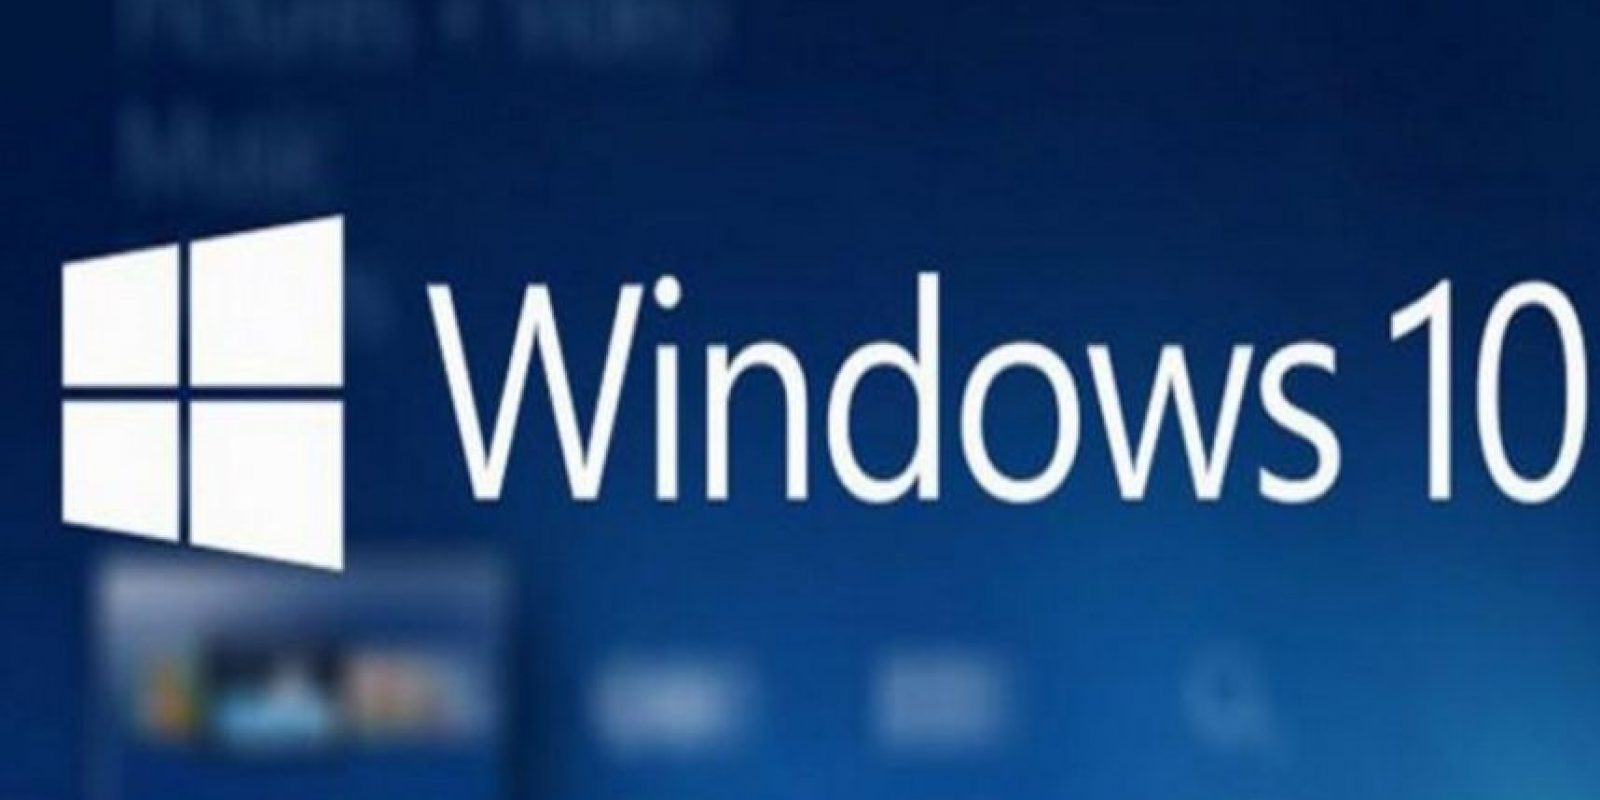 Windows 10 está disponible desde este 29 de julio. Foto: Microsoft Windows